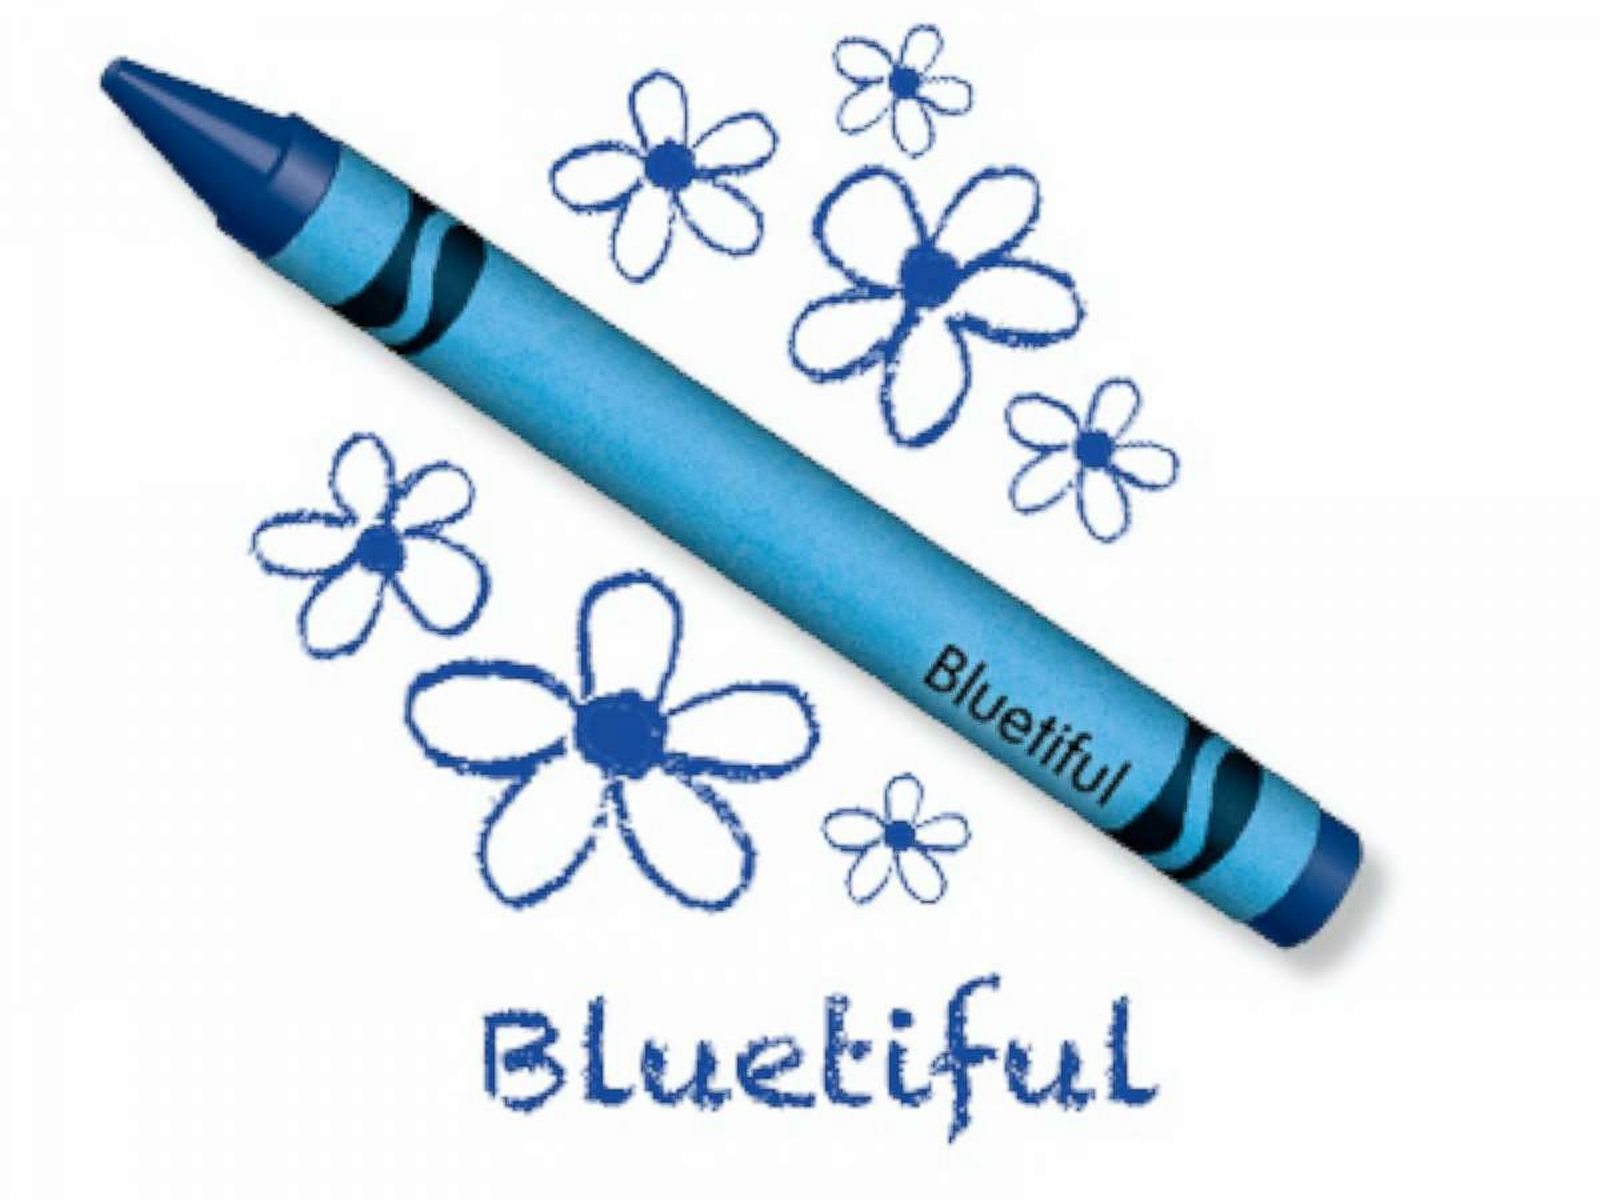 crayola names new blue crayon bluetiful after retiring yellow